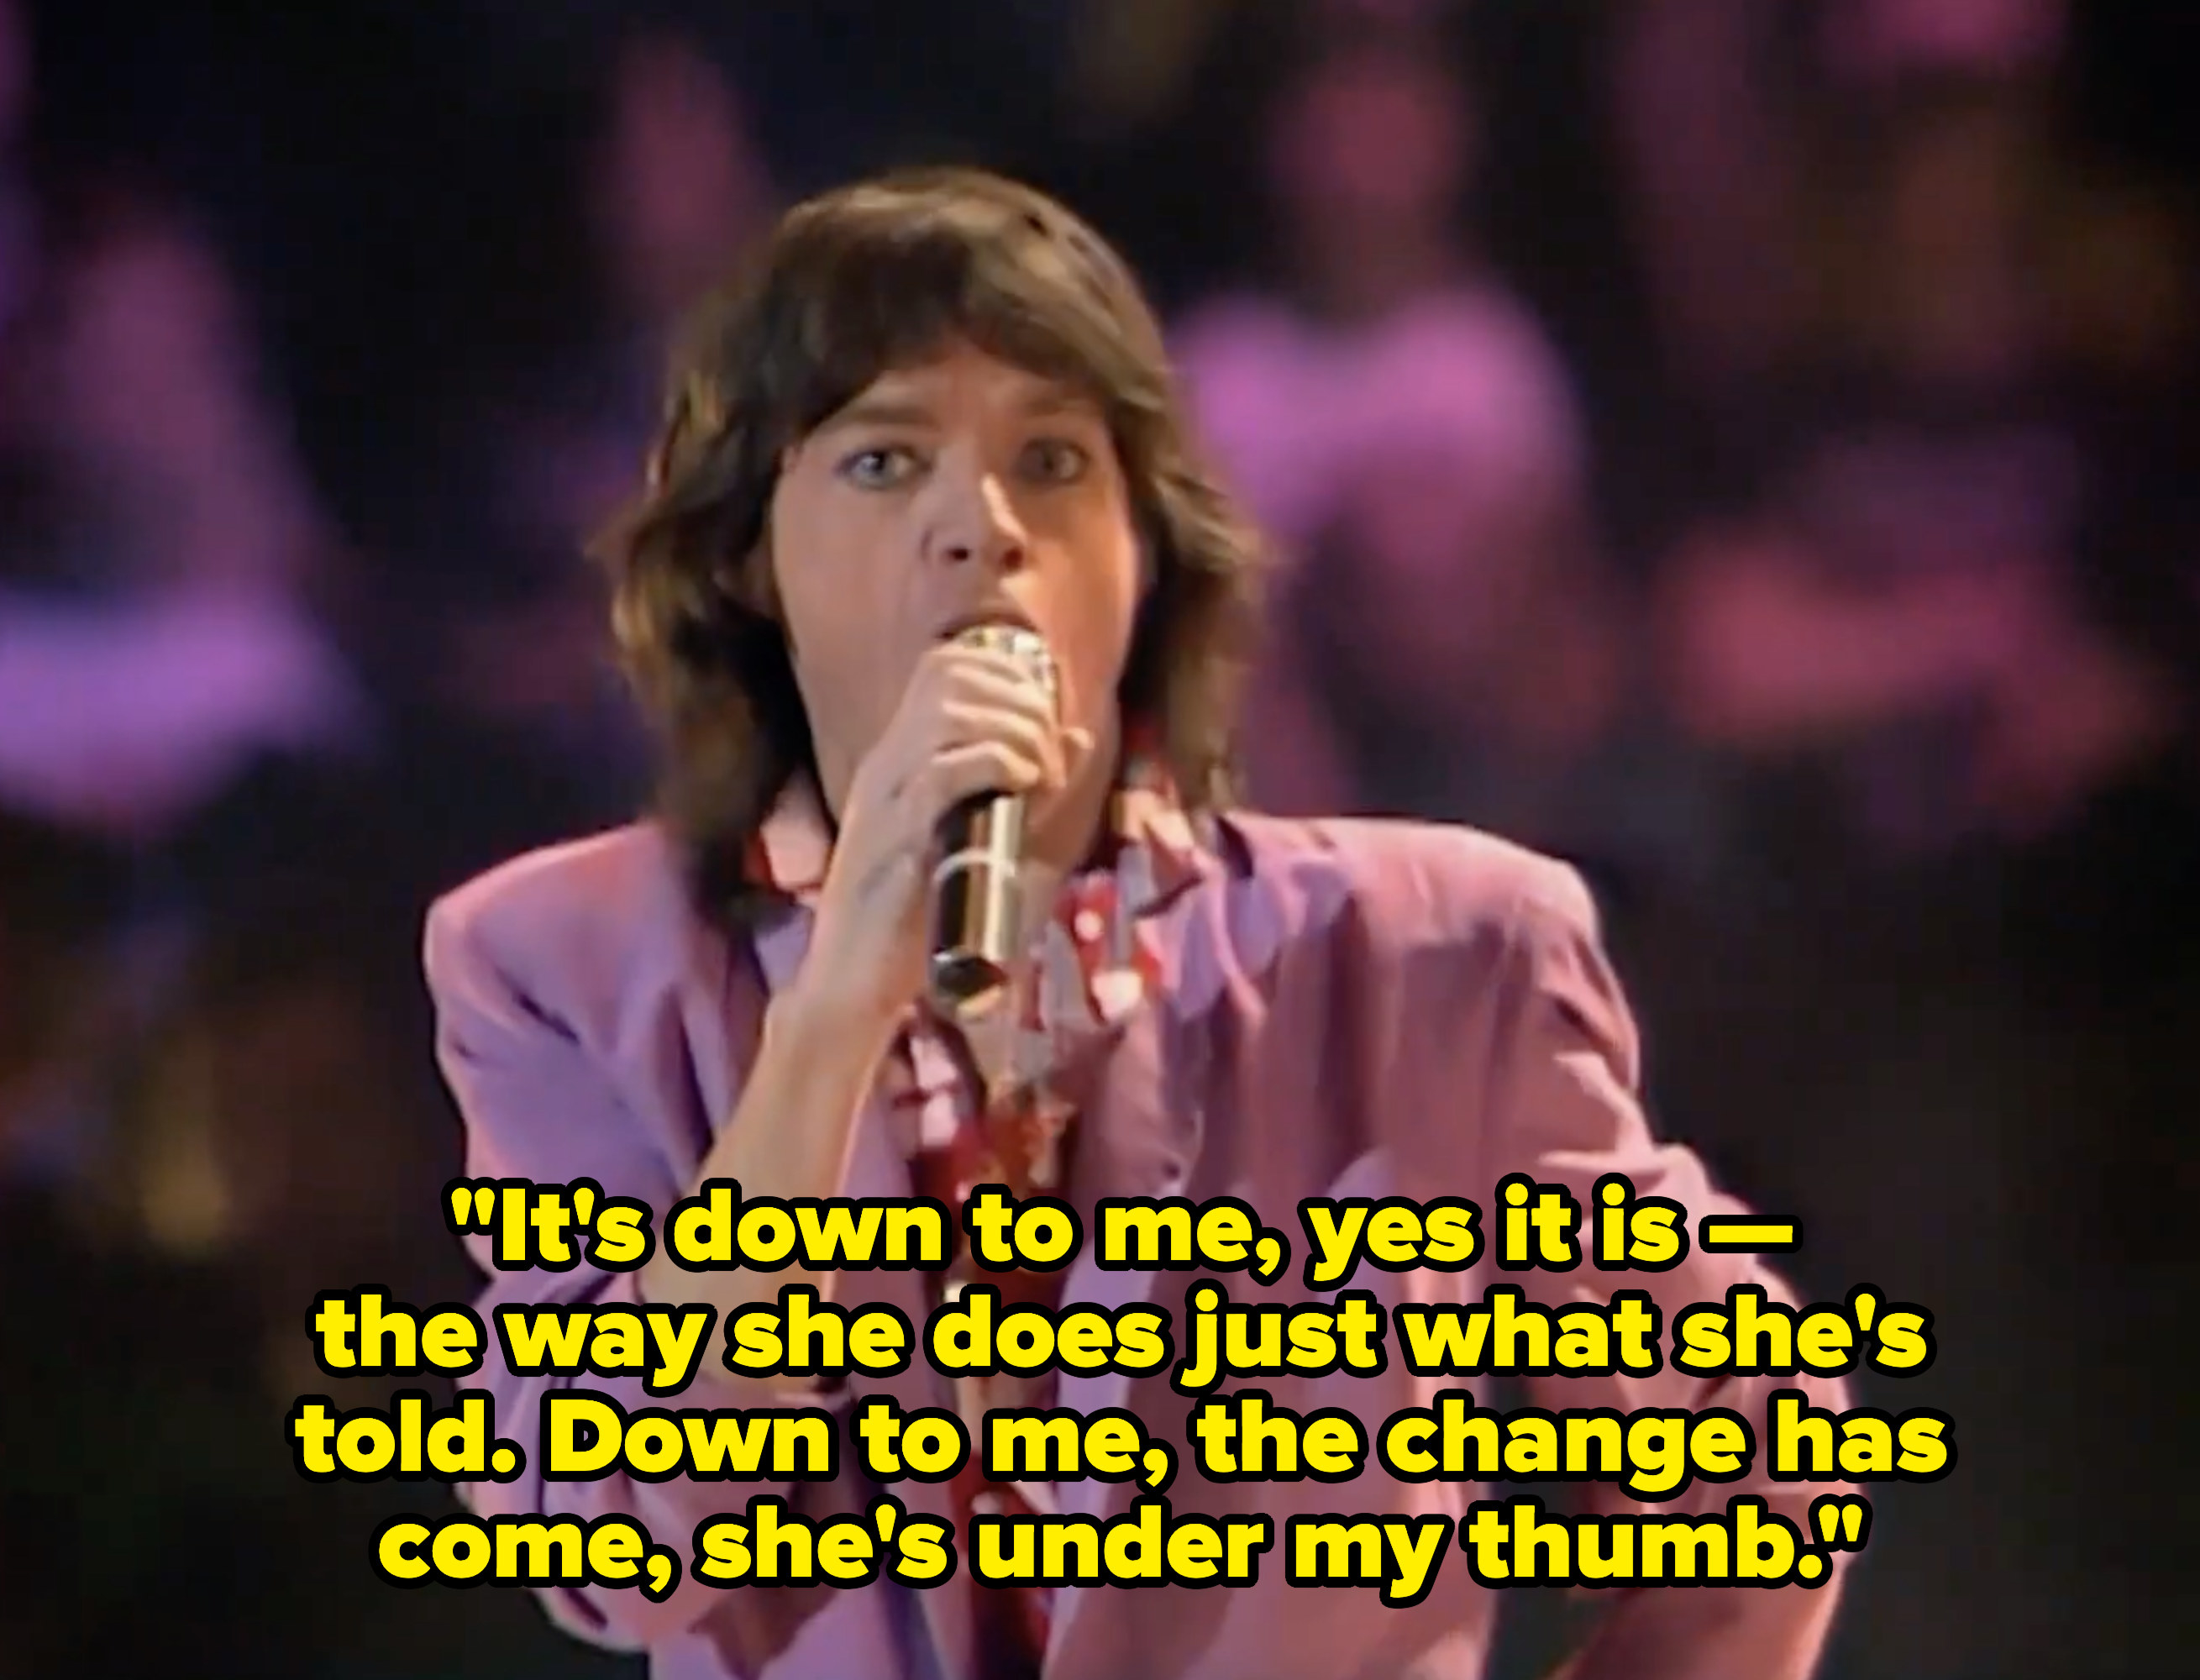 """Mick Jagger singing: """"It's down to me, yes it is -- the way she does just what she's told. Down to me, the change has come, she's under my thumb"""""""